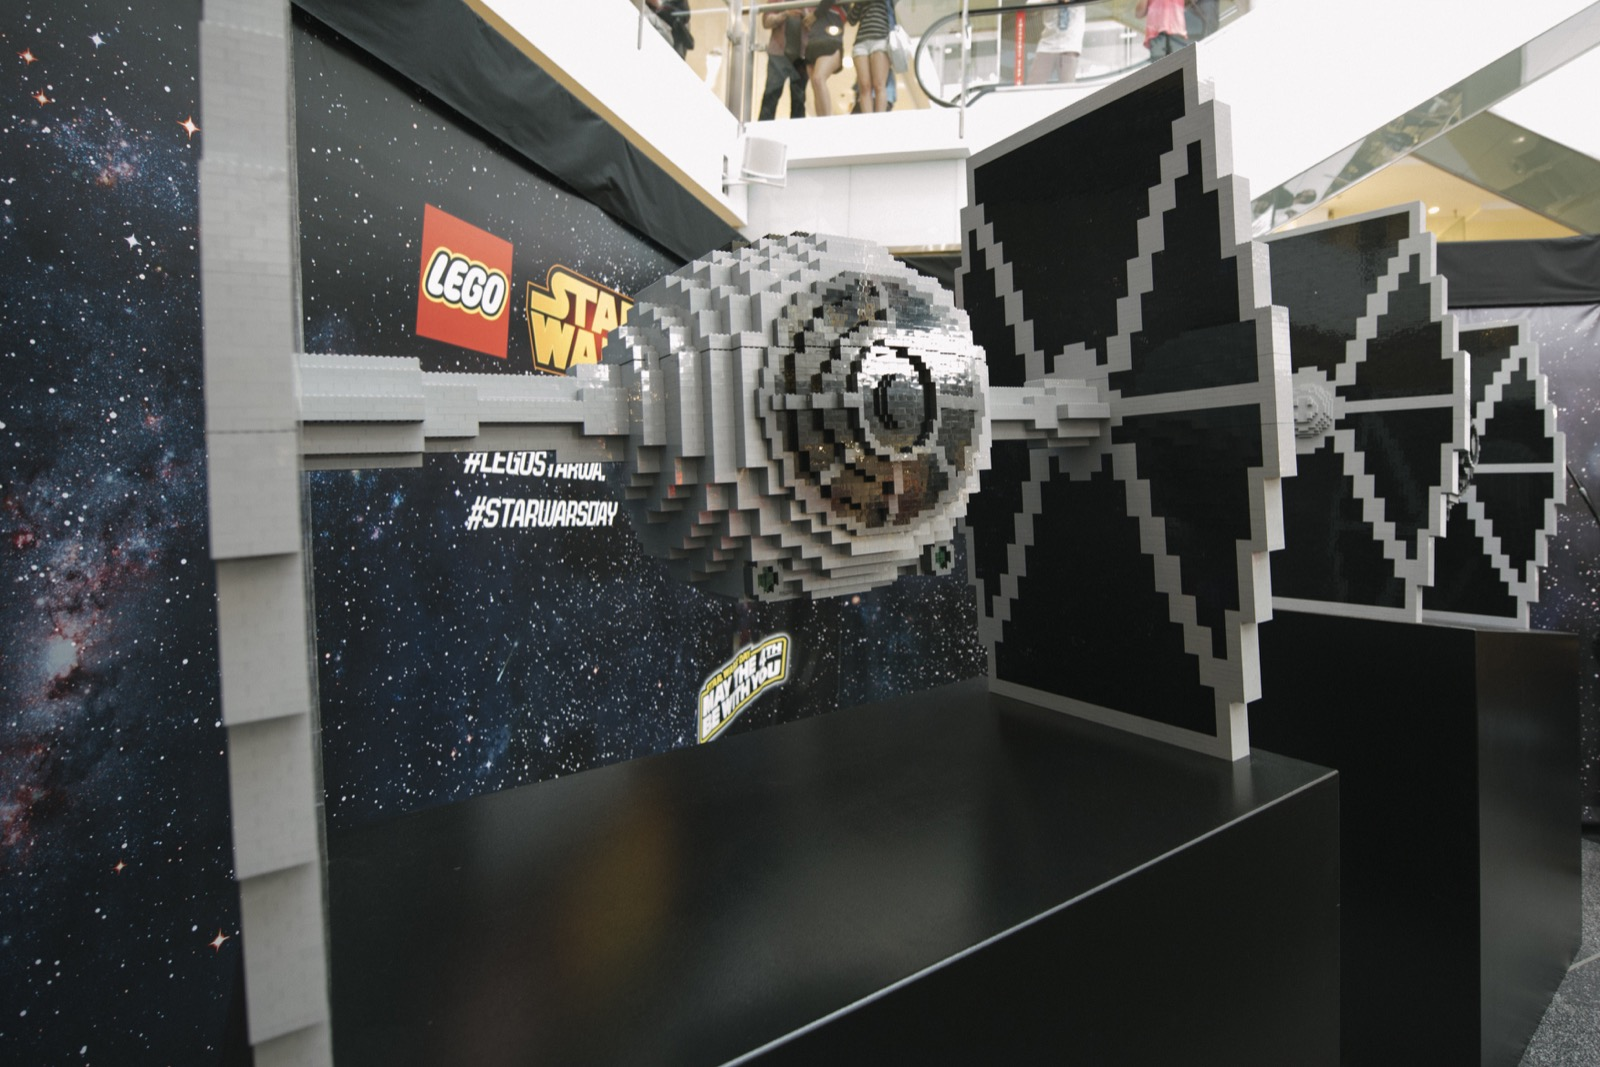 Exposer Son Millennium Falcon Lego Star Wars Star Wars Father Son Master Builder Duo Unveil World 39s Largest Lego